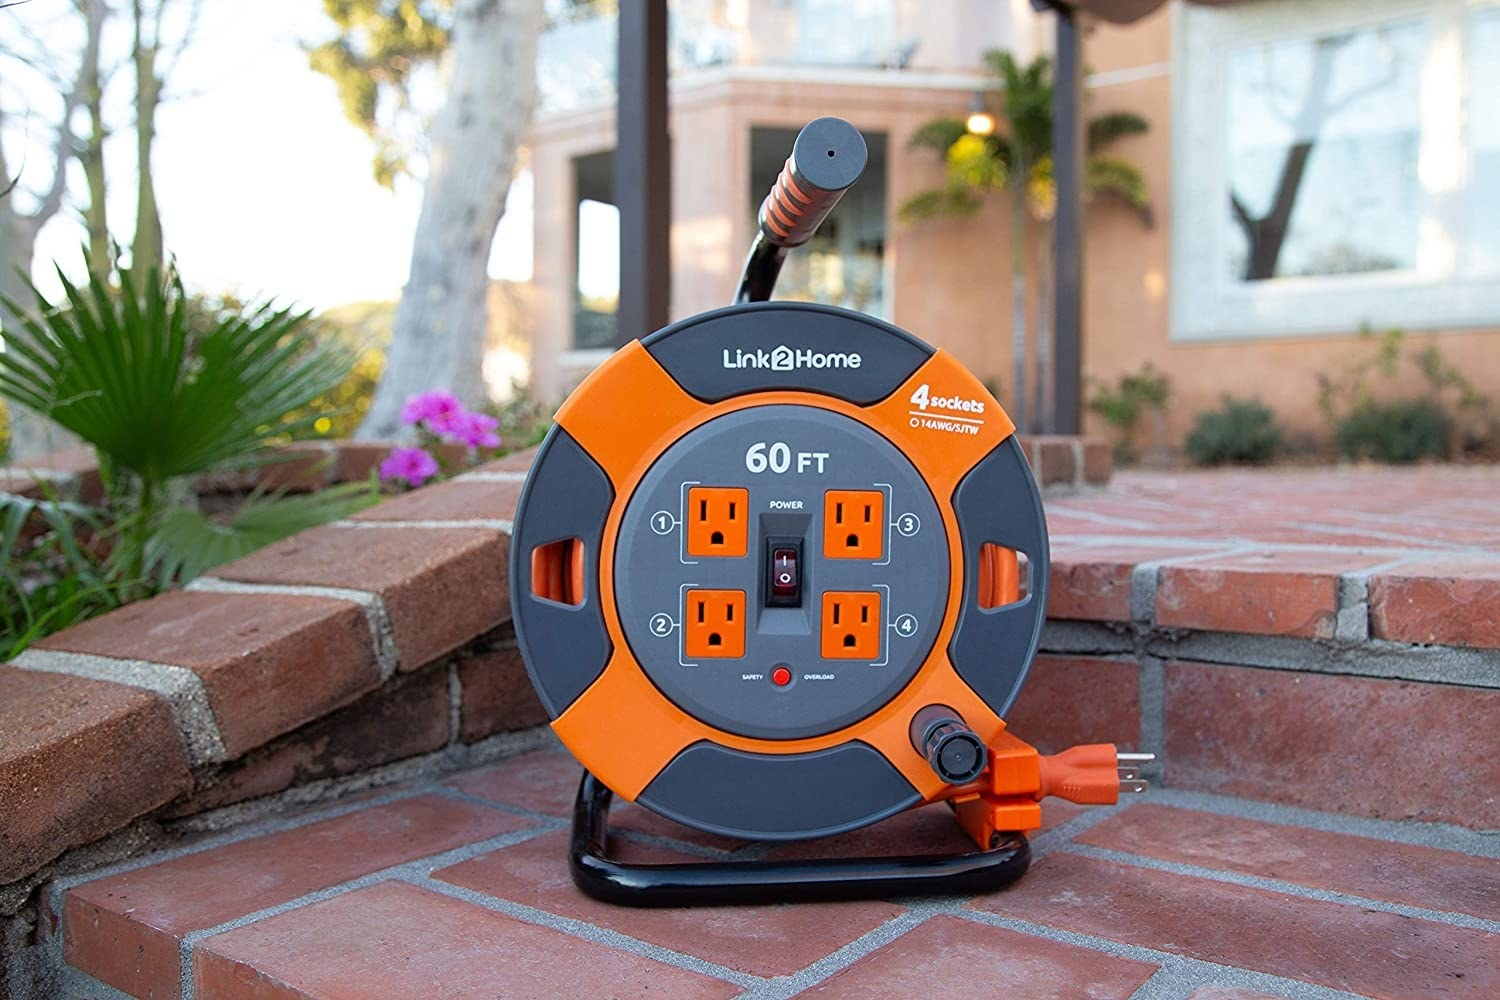 the orange and grey extension cord winder with four outlets in the middle of it